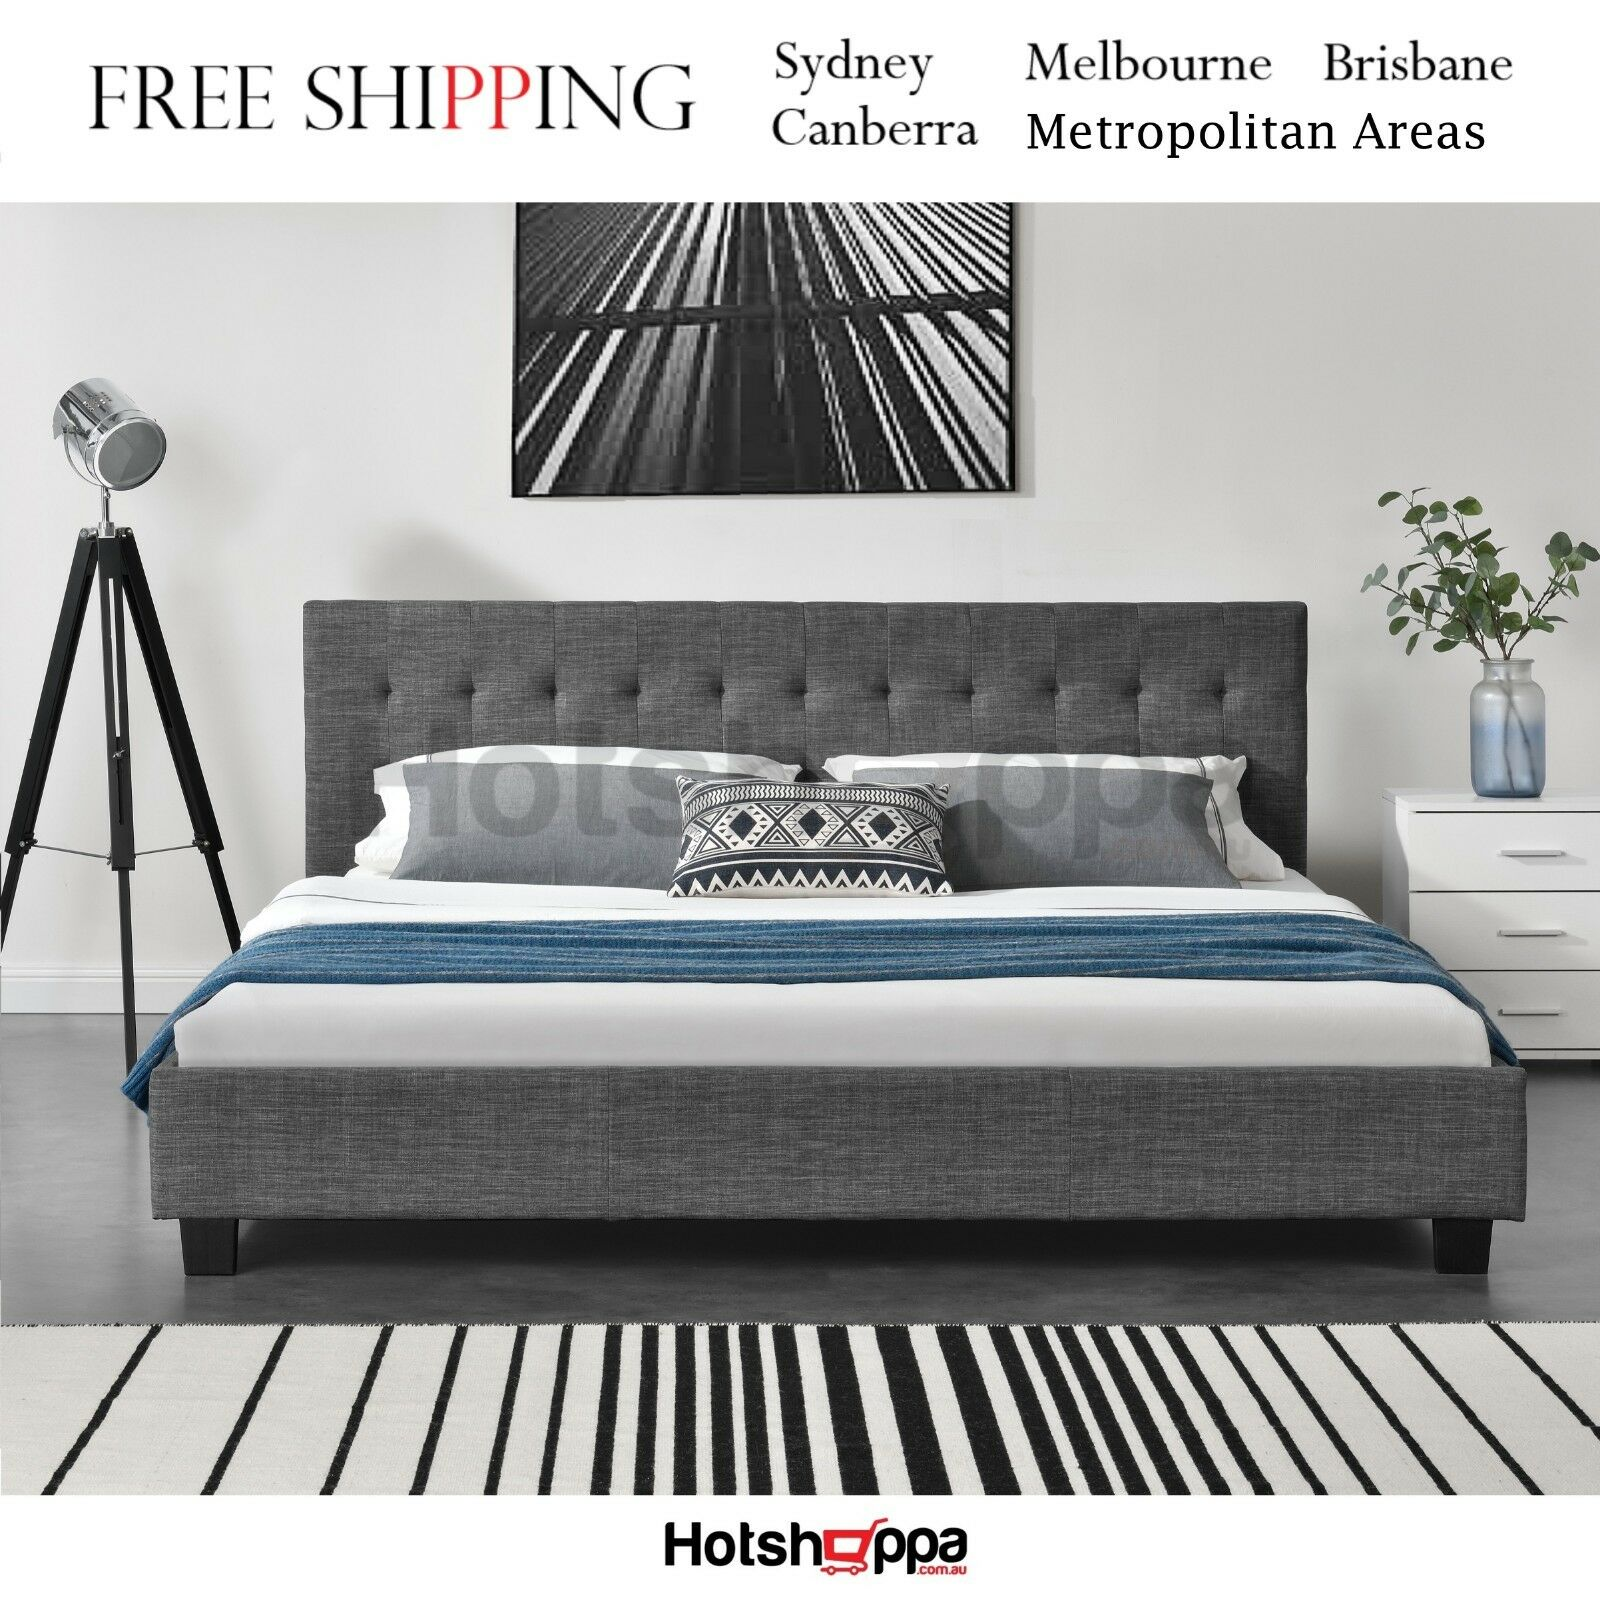 Queen Bed Frame.Details About Queen Bed Frame Strong Steel Frame Premium Quality Grayson Bedframe Hotshoppa